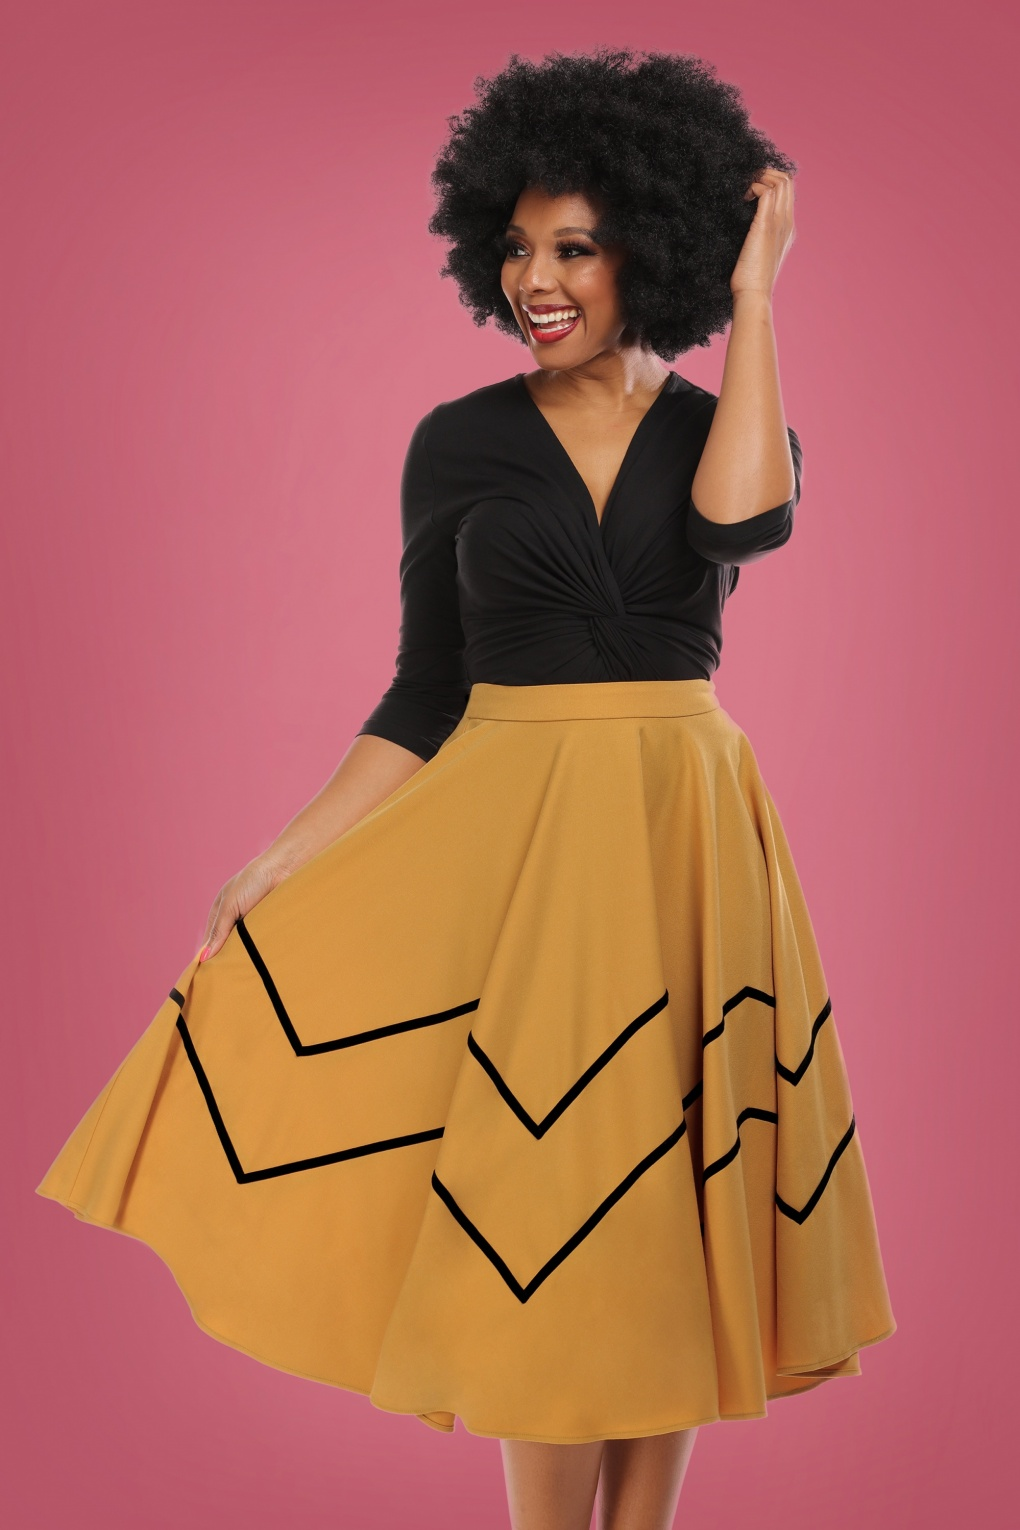 1950s Swing Skirt, Poodle Skirt, Pencil Skirts 50s Milla Swing Skirt in Mustard £64.44 AT vintagedancer.com